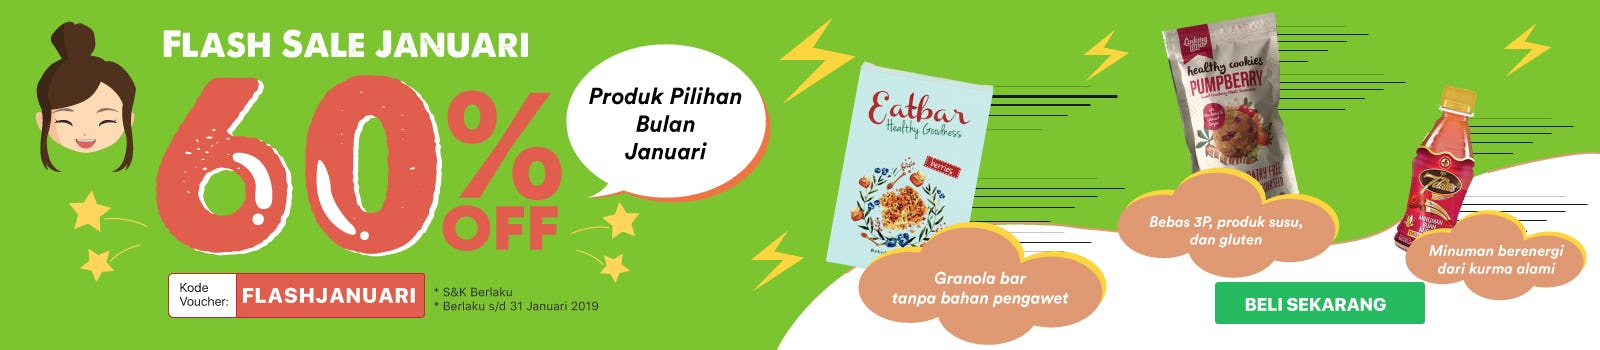 Flash Sale Januari